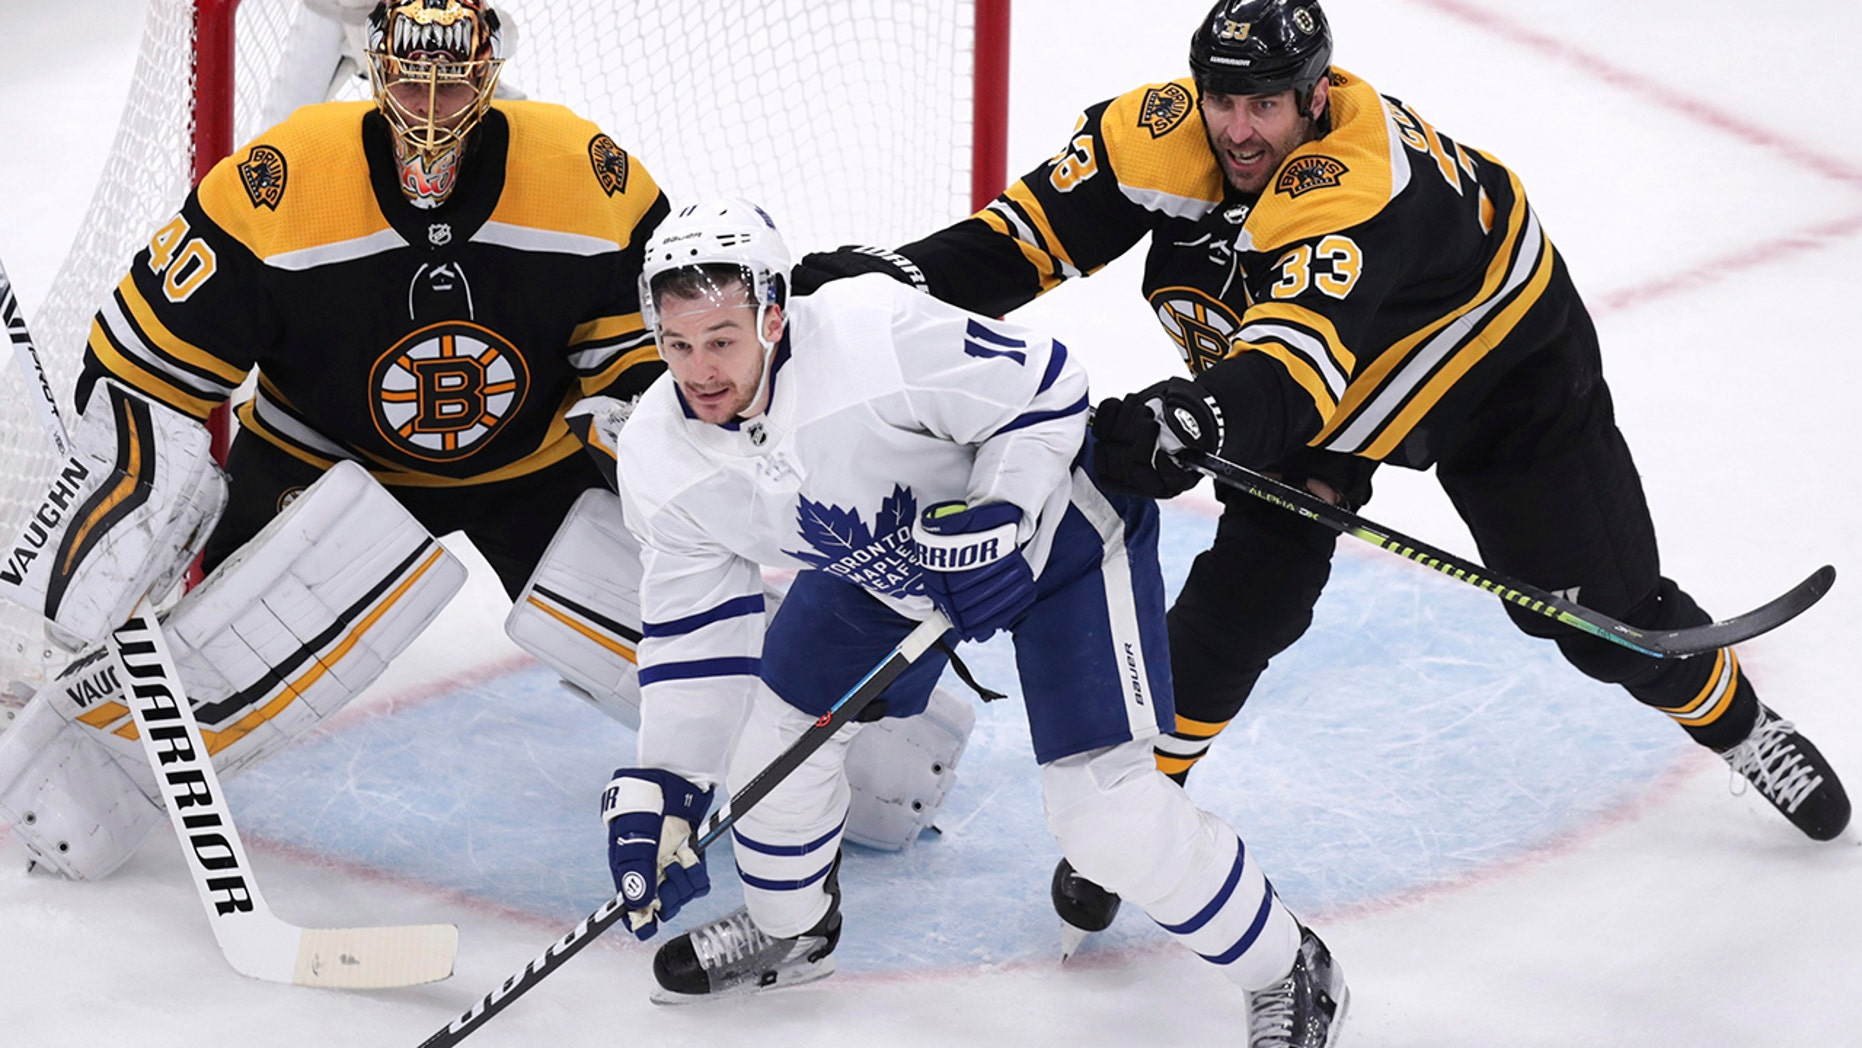 Boston Bruins defenseman Zdeno Chara (33) tries to clear Toronto Maple Leafs left wing Zach Hyman (11) away from goalie Tuukka Rask during the first period of Game 7 of an NHL hockey first-round playoff series, Tuesday, April 23, 2019, in Boston. (Associated Press)